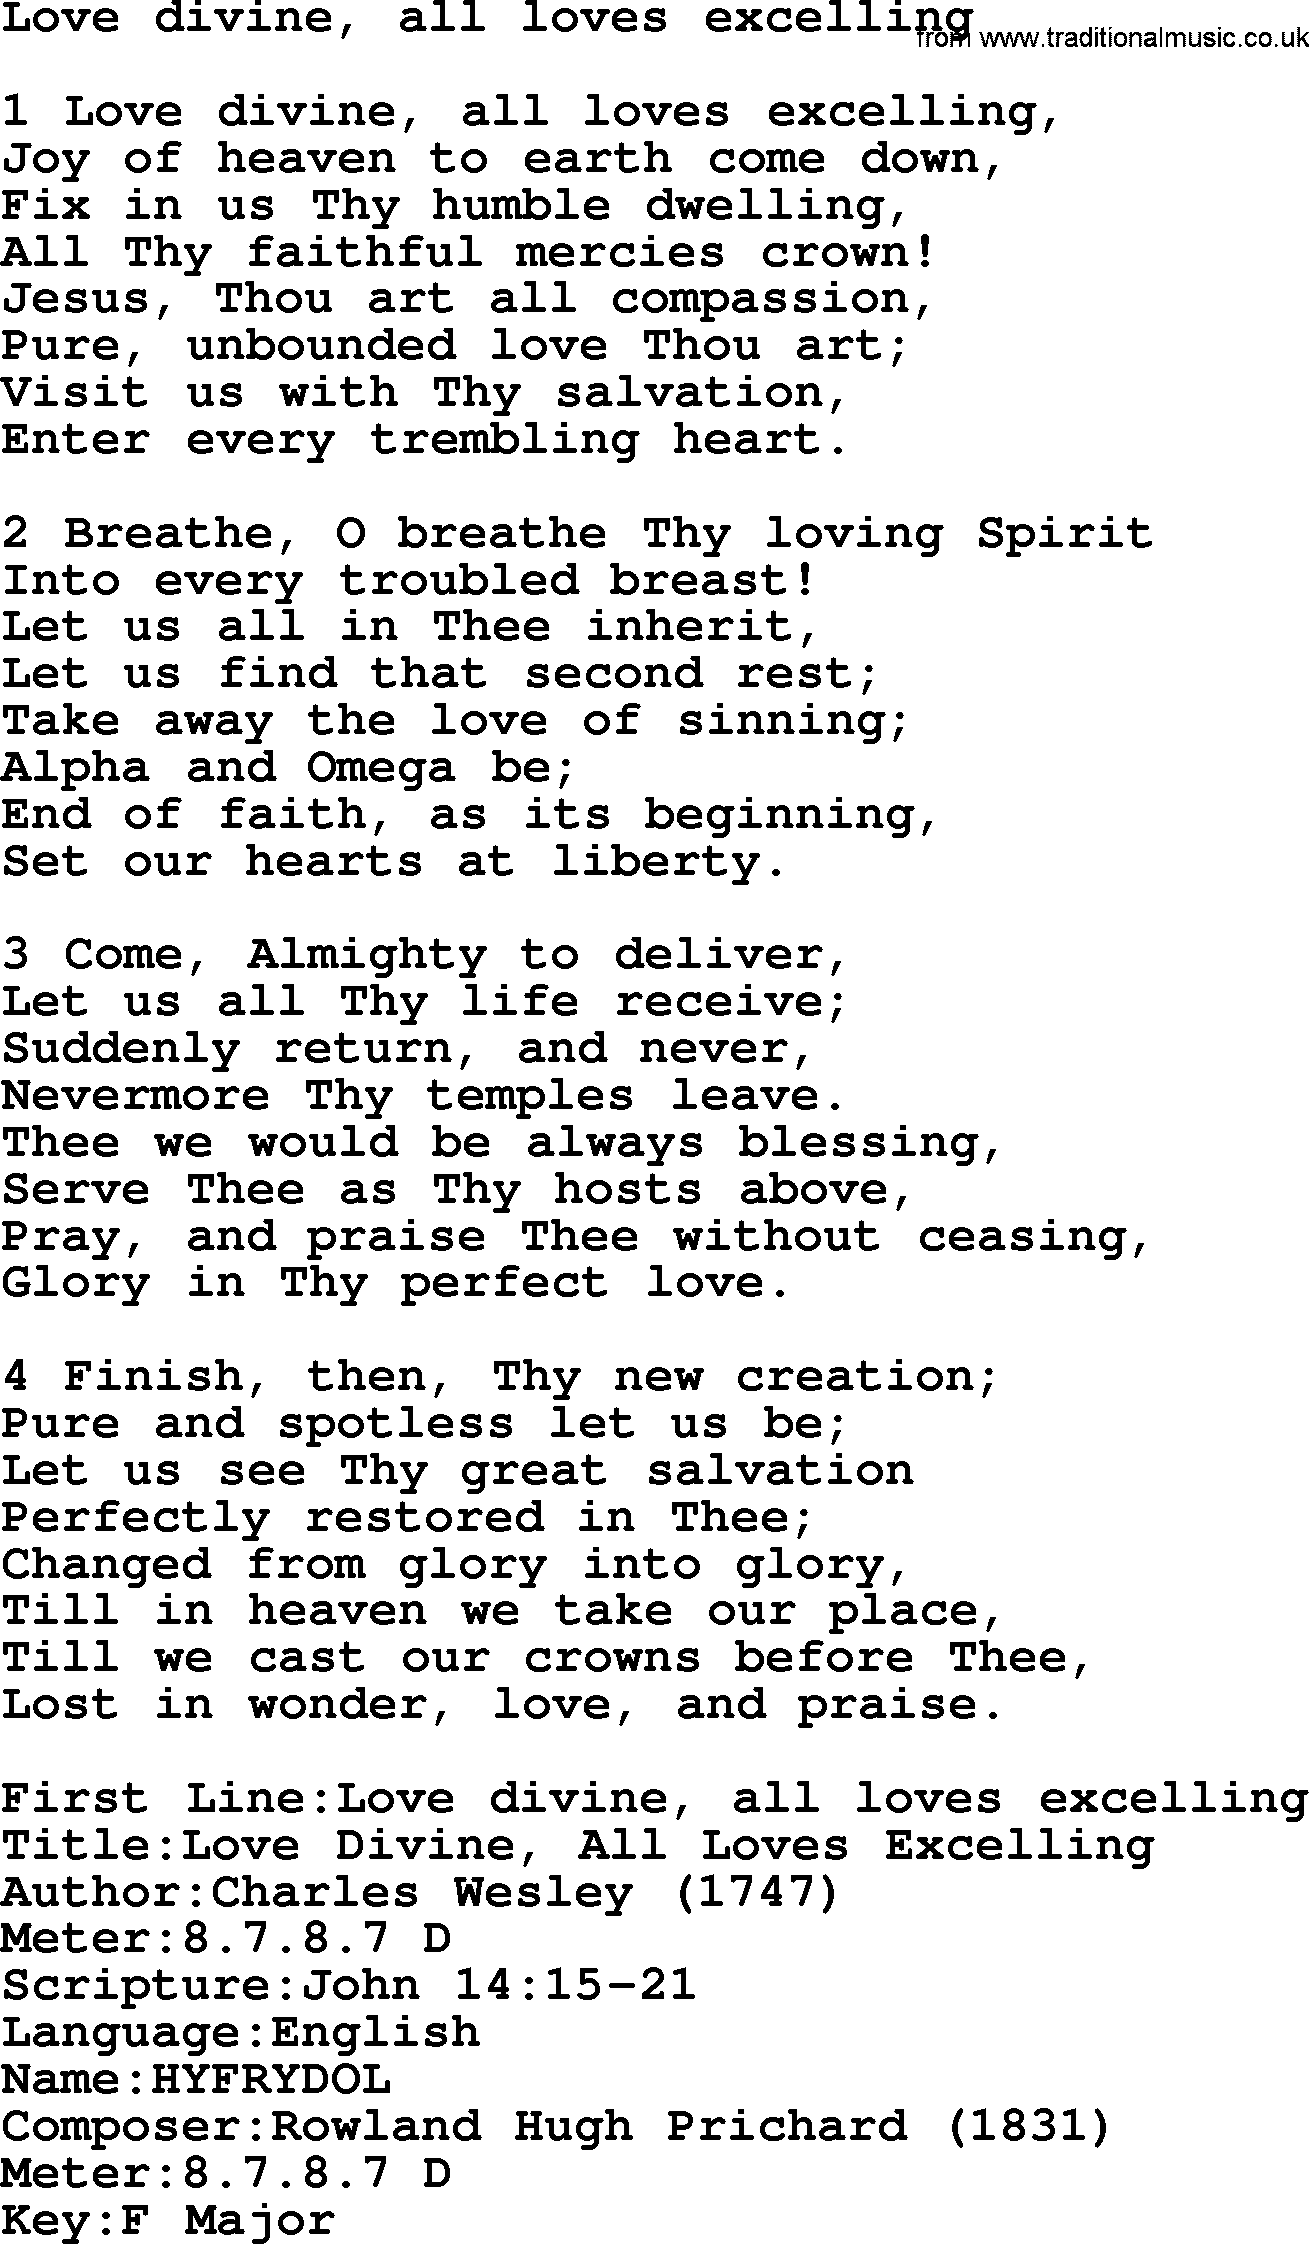 presbyterian hymn love divine all loves excelling lyrics and pdf presbyterian hymns collection hymn love divine all loves excelling lyrics and pdf